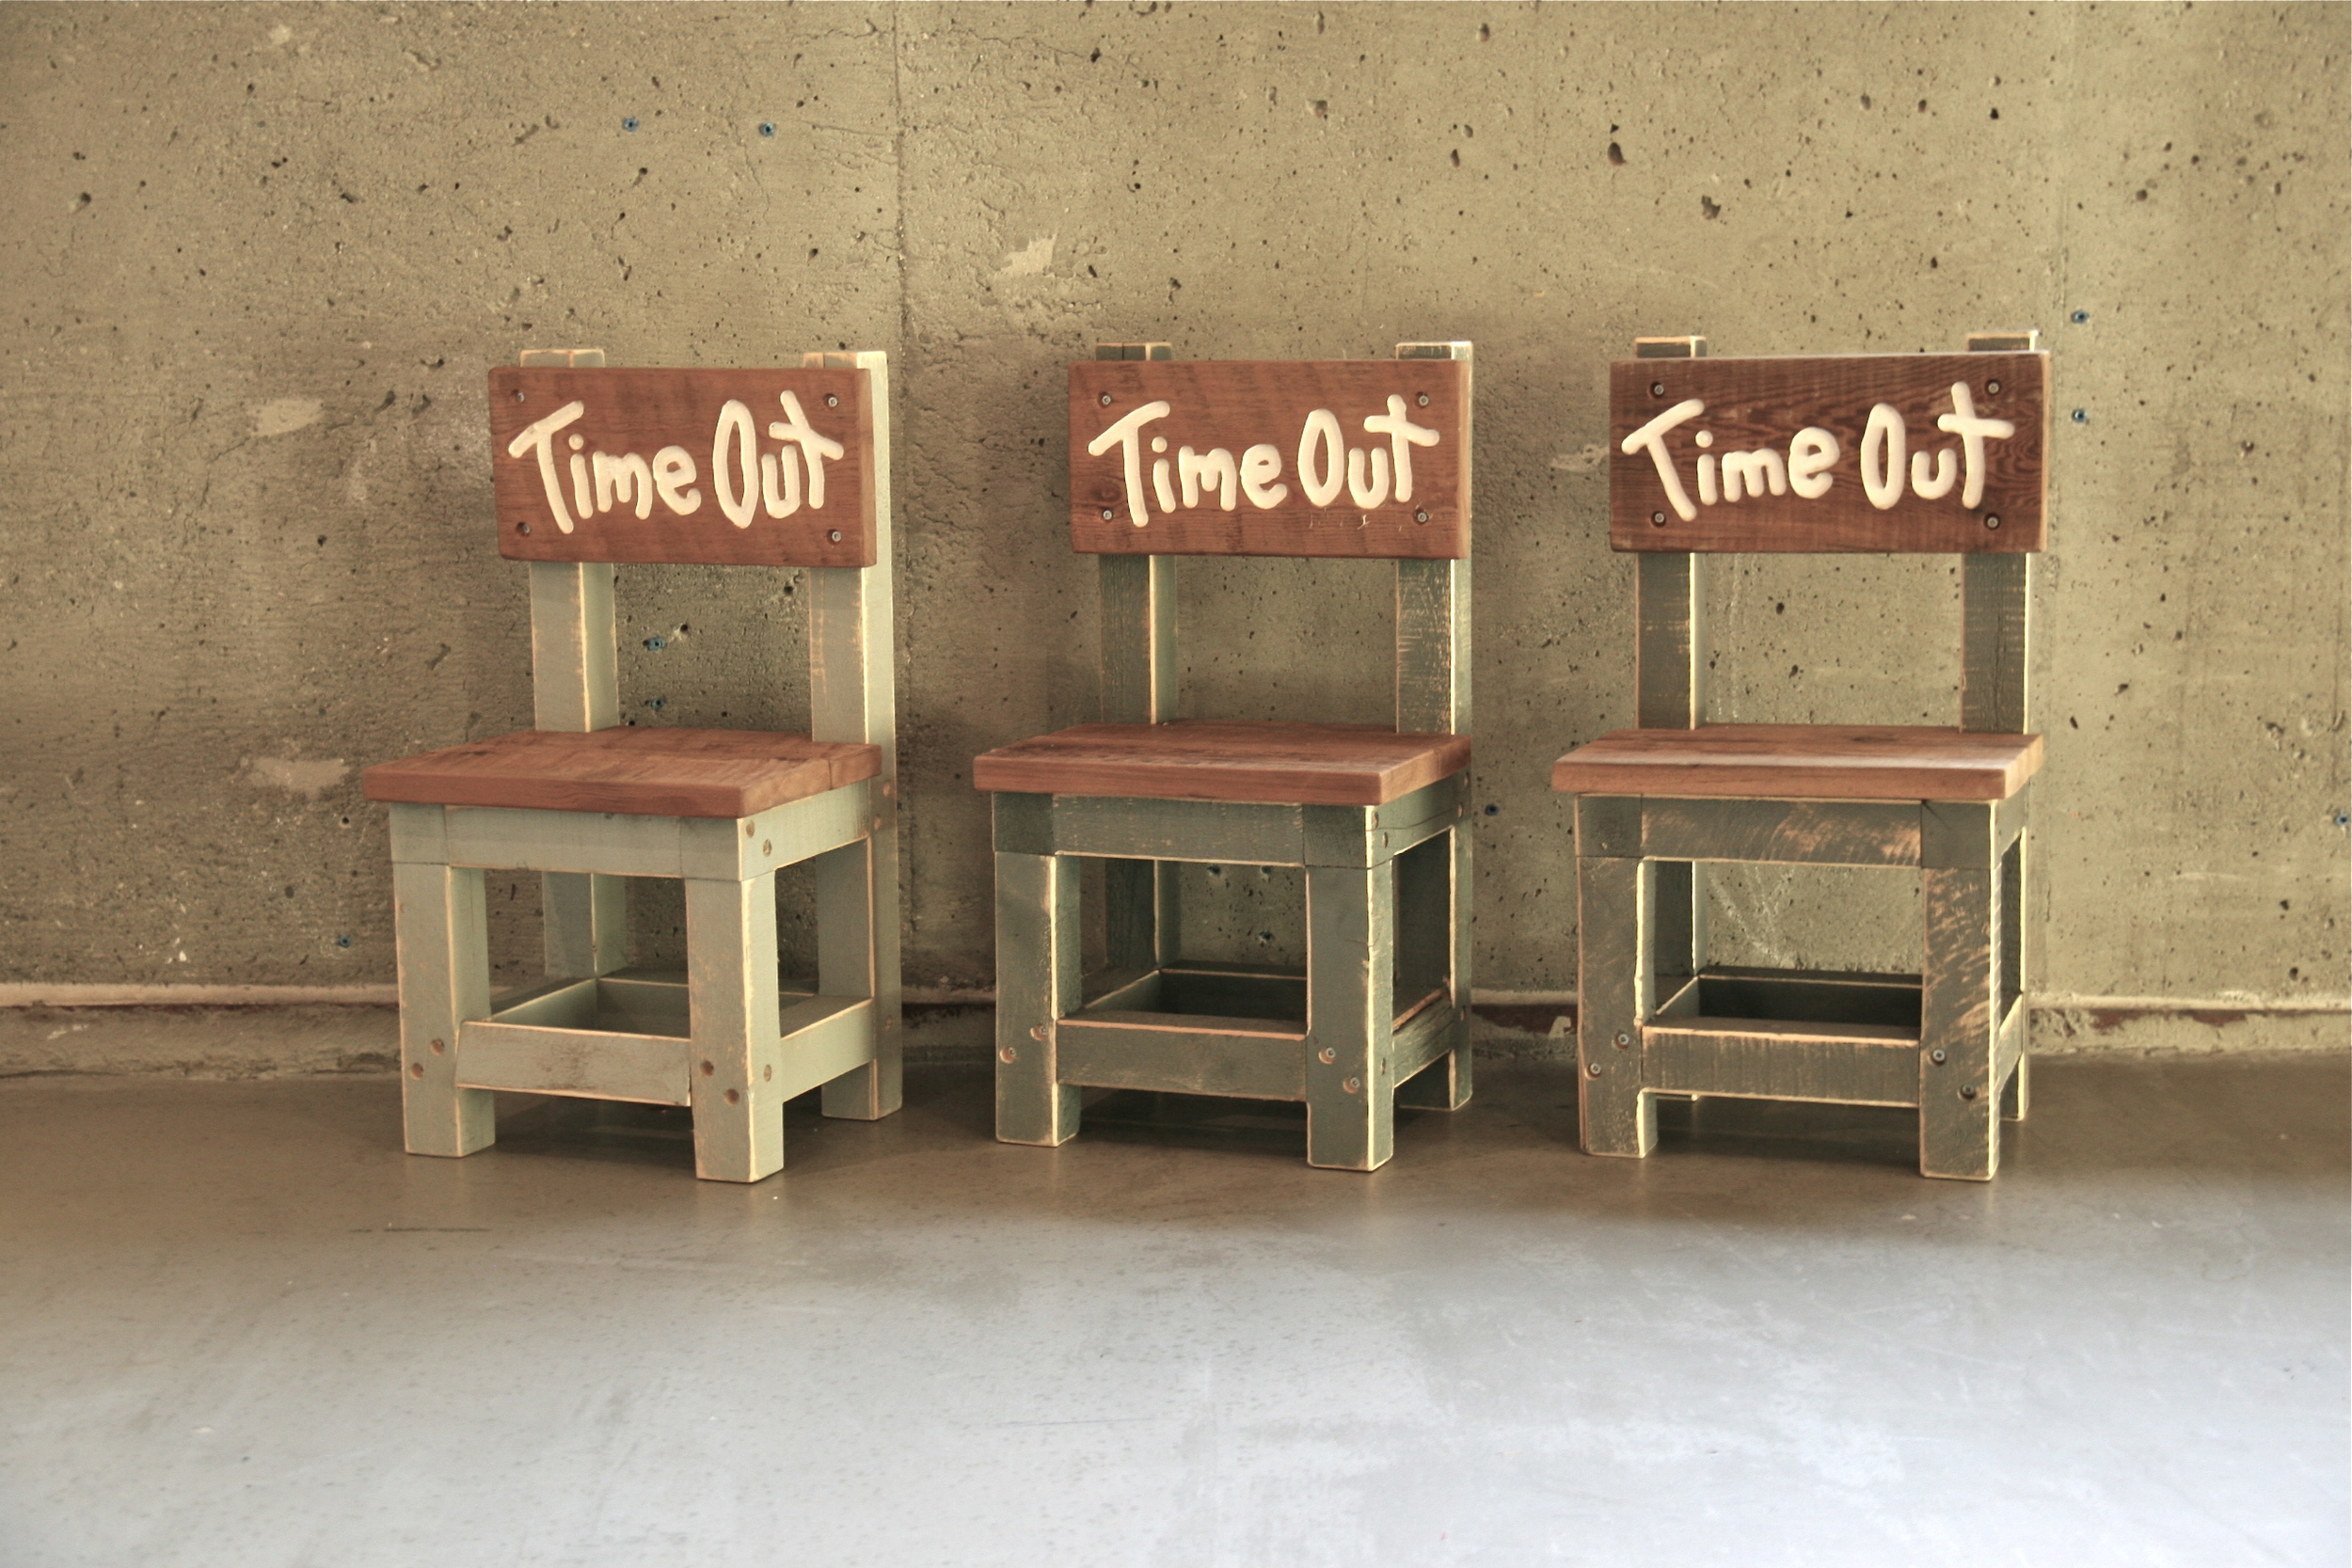 time out chairs1.JPG